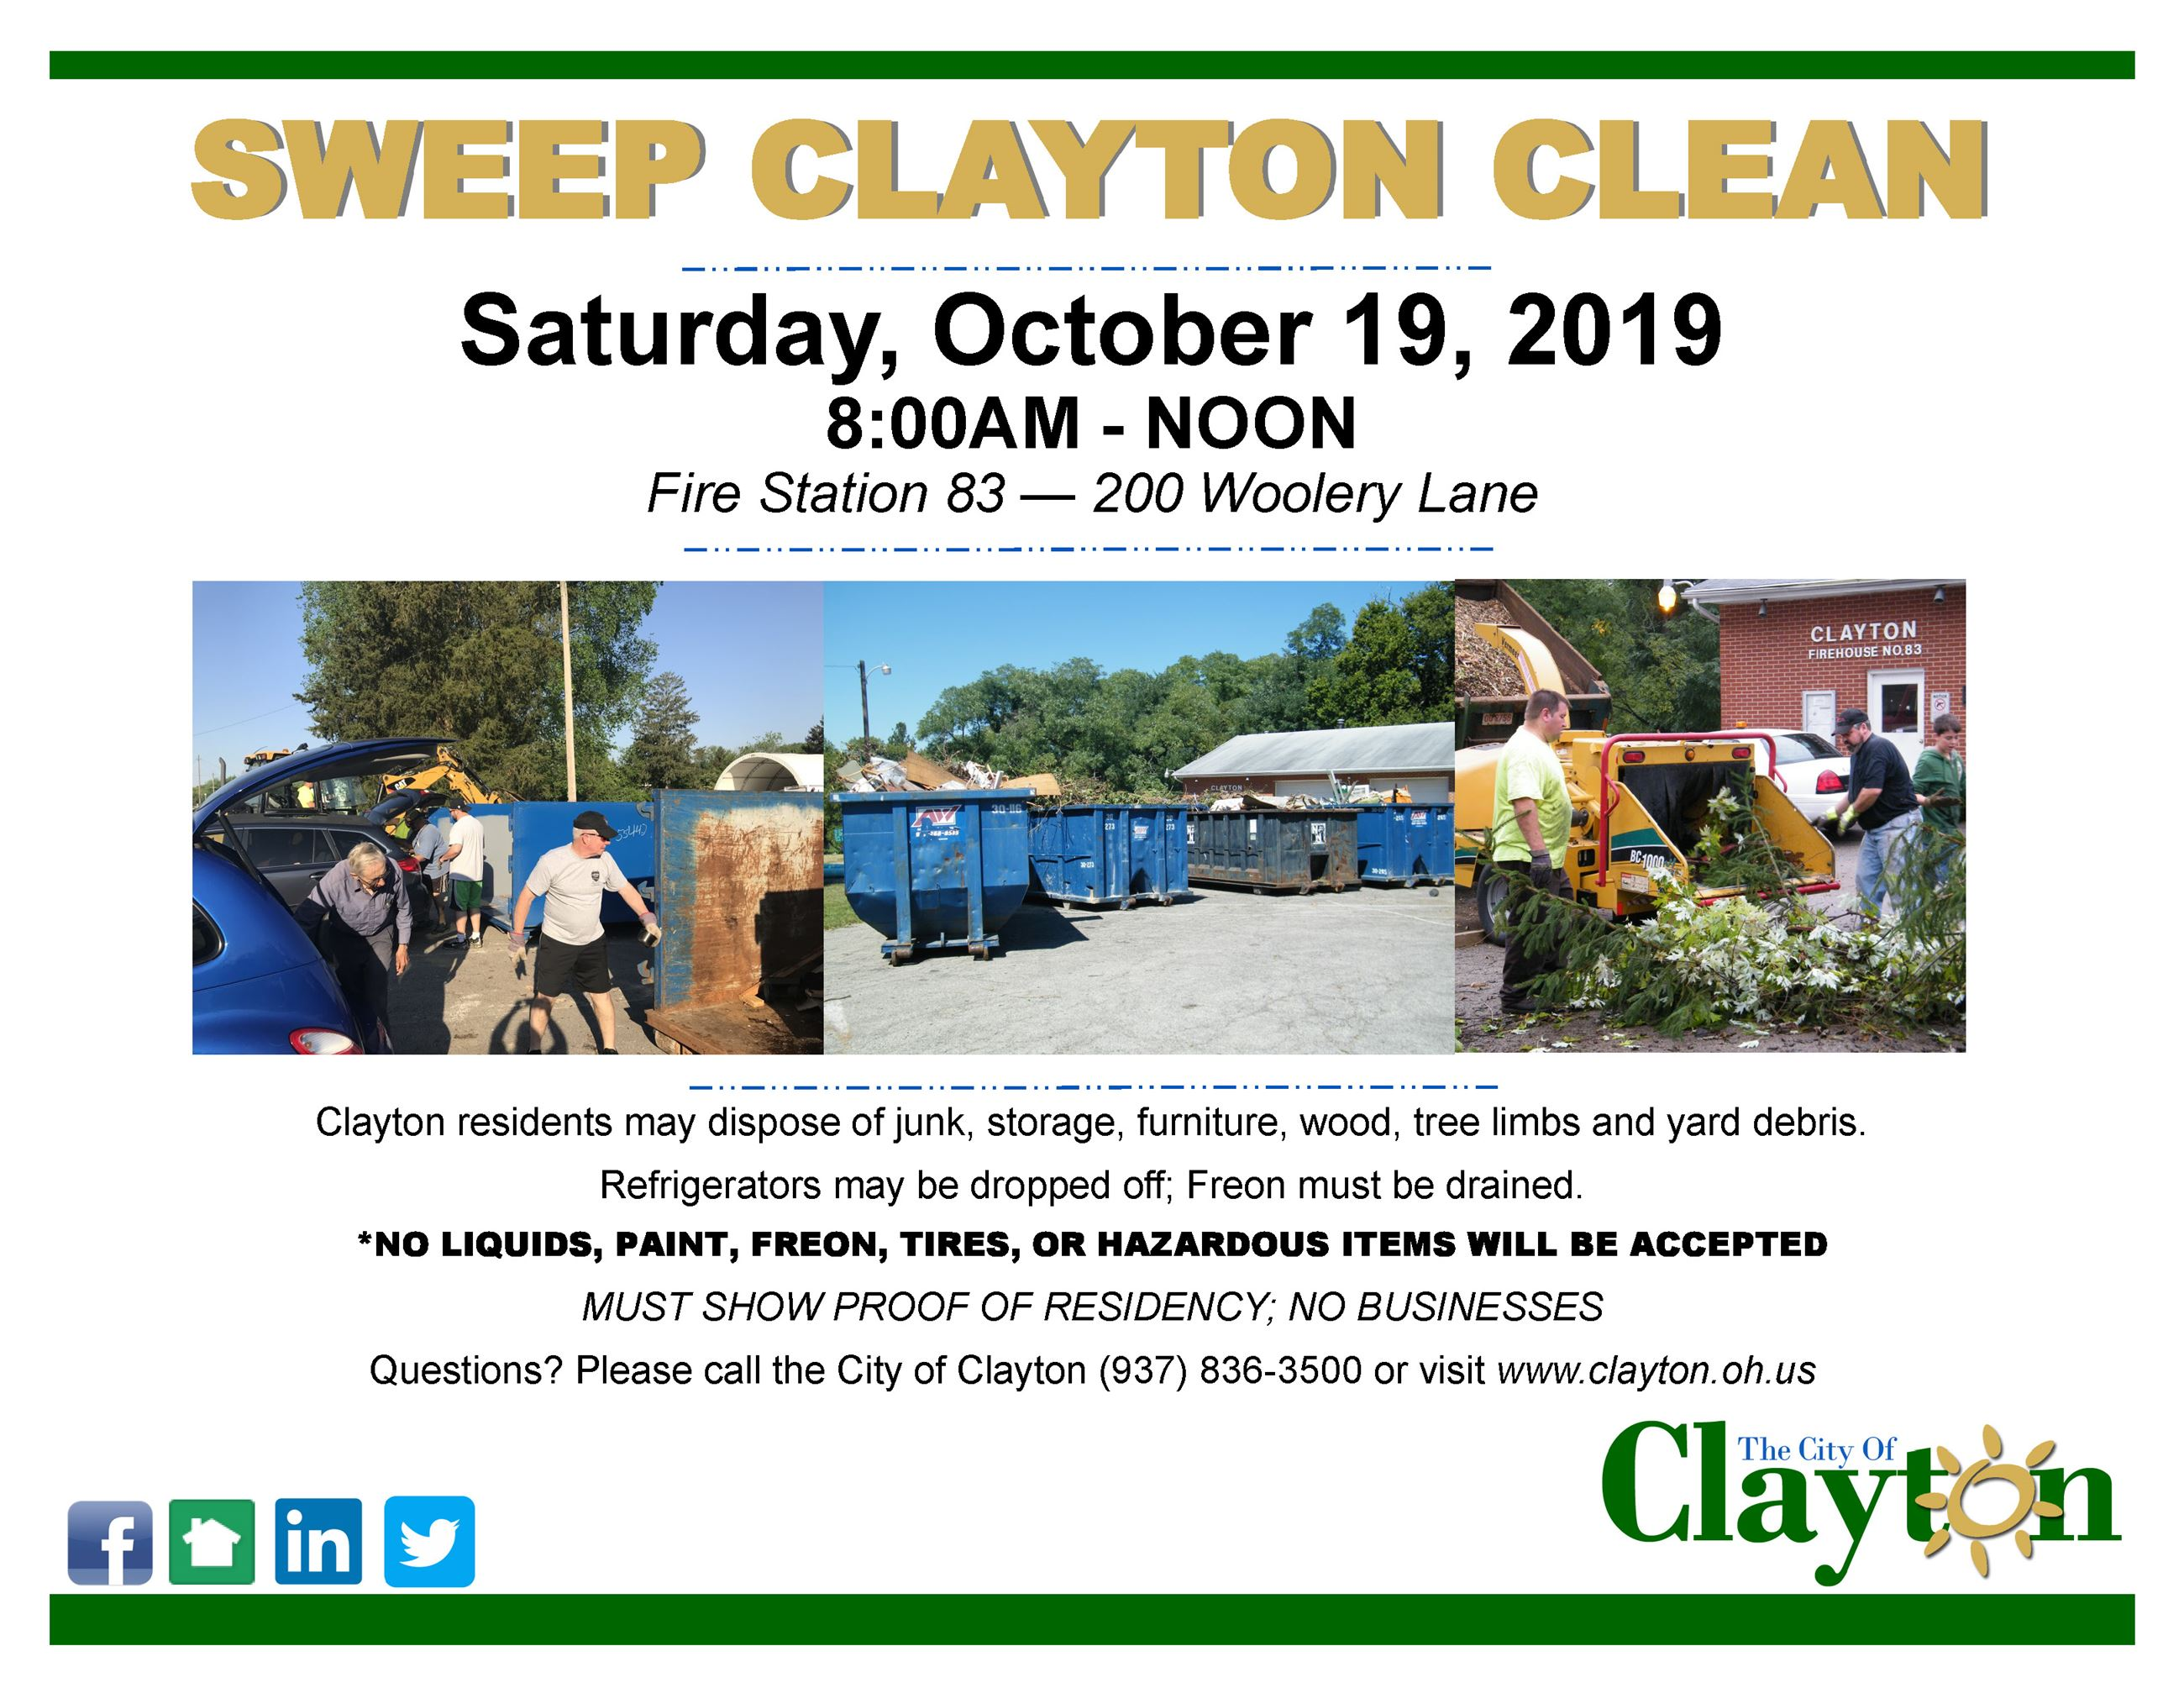 Sweep Clayton Clean Flyer - October 2019